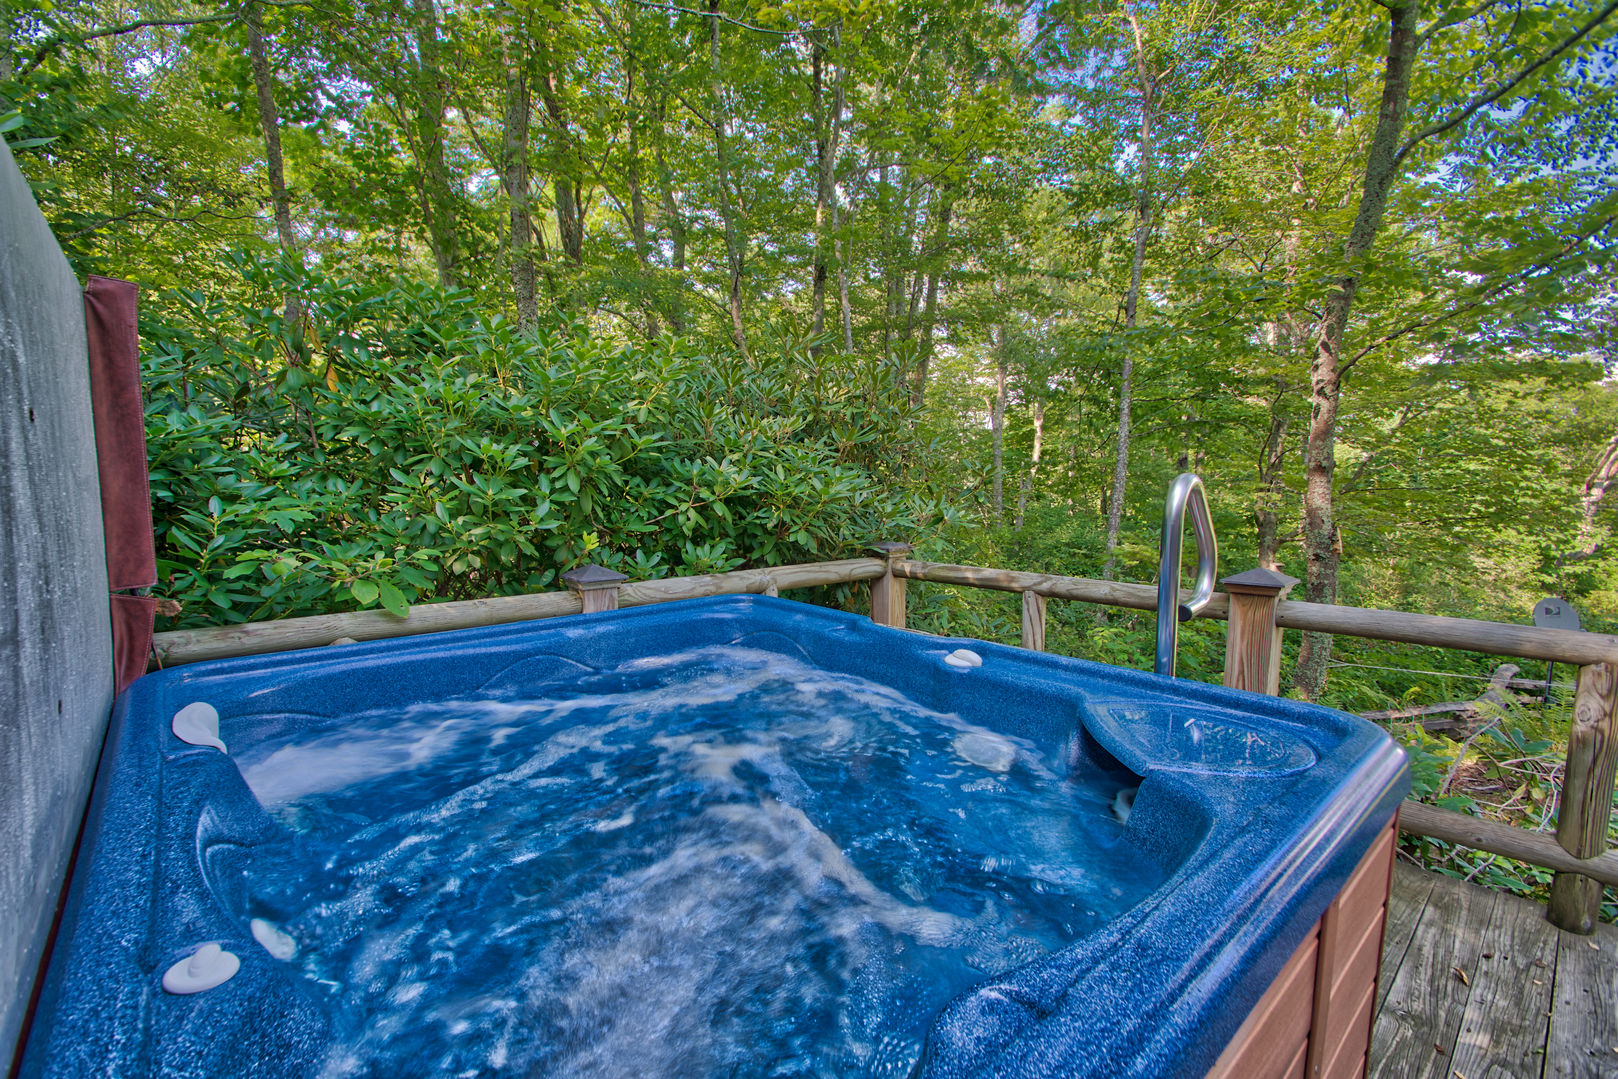 Soak in this four person hot tub after a day hiking nearby Grandfather Mountain!